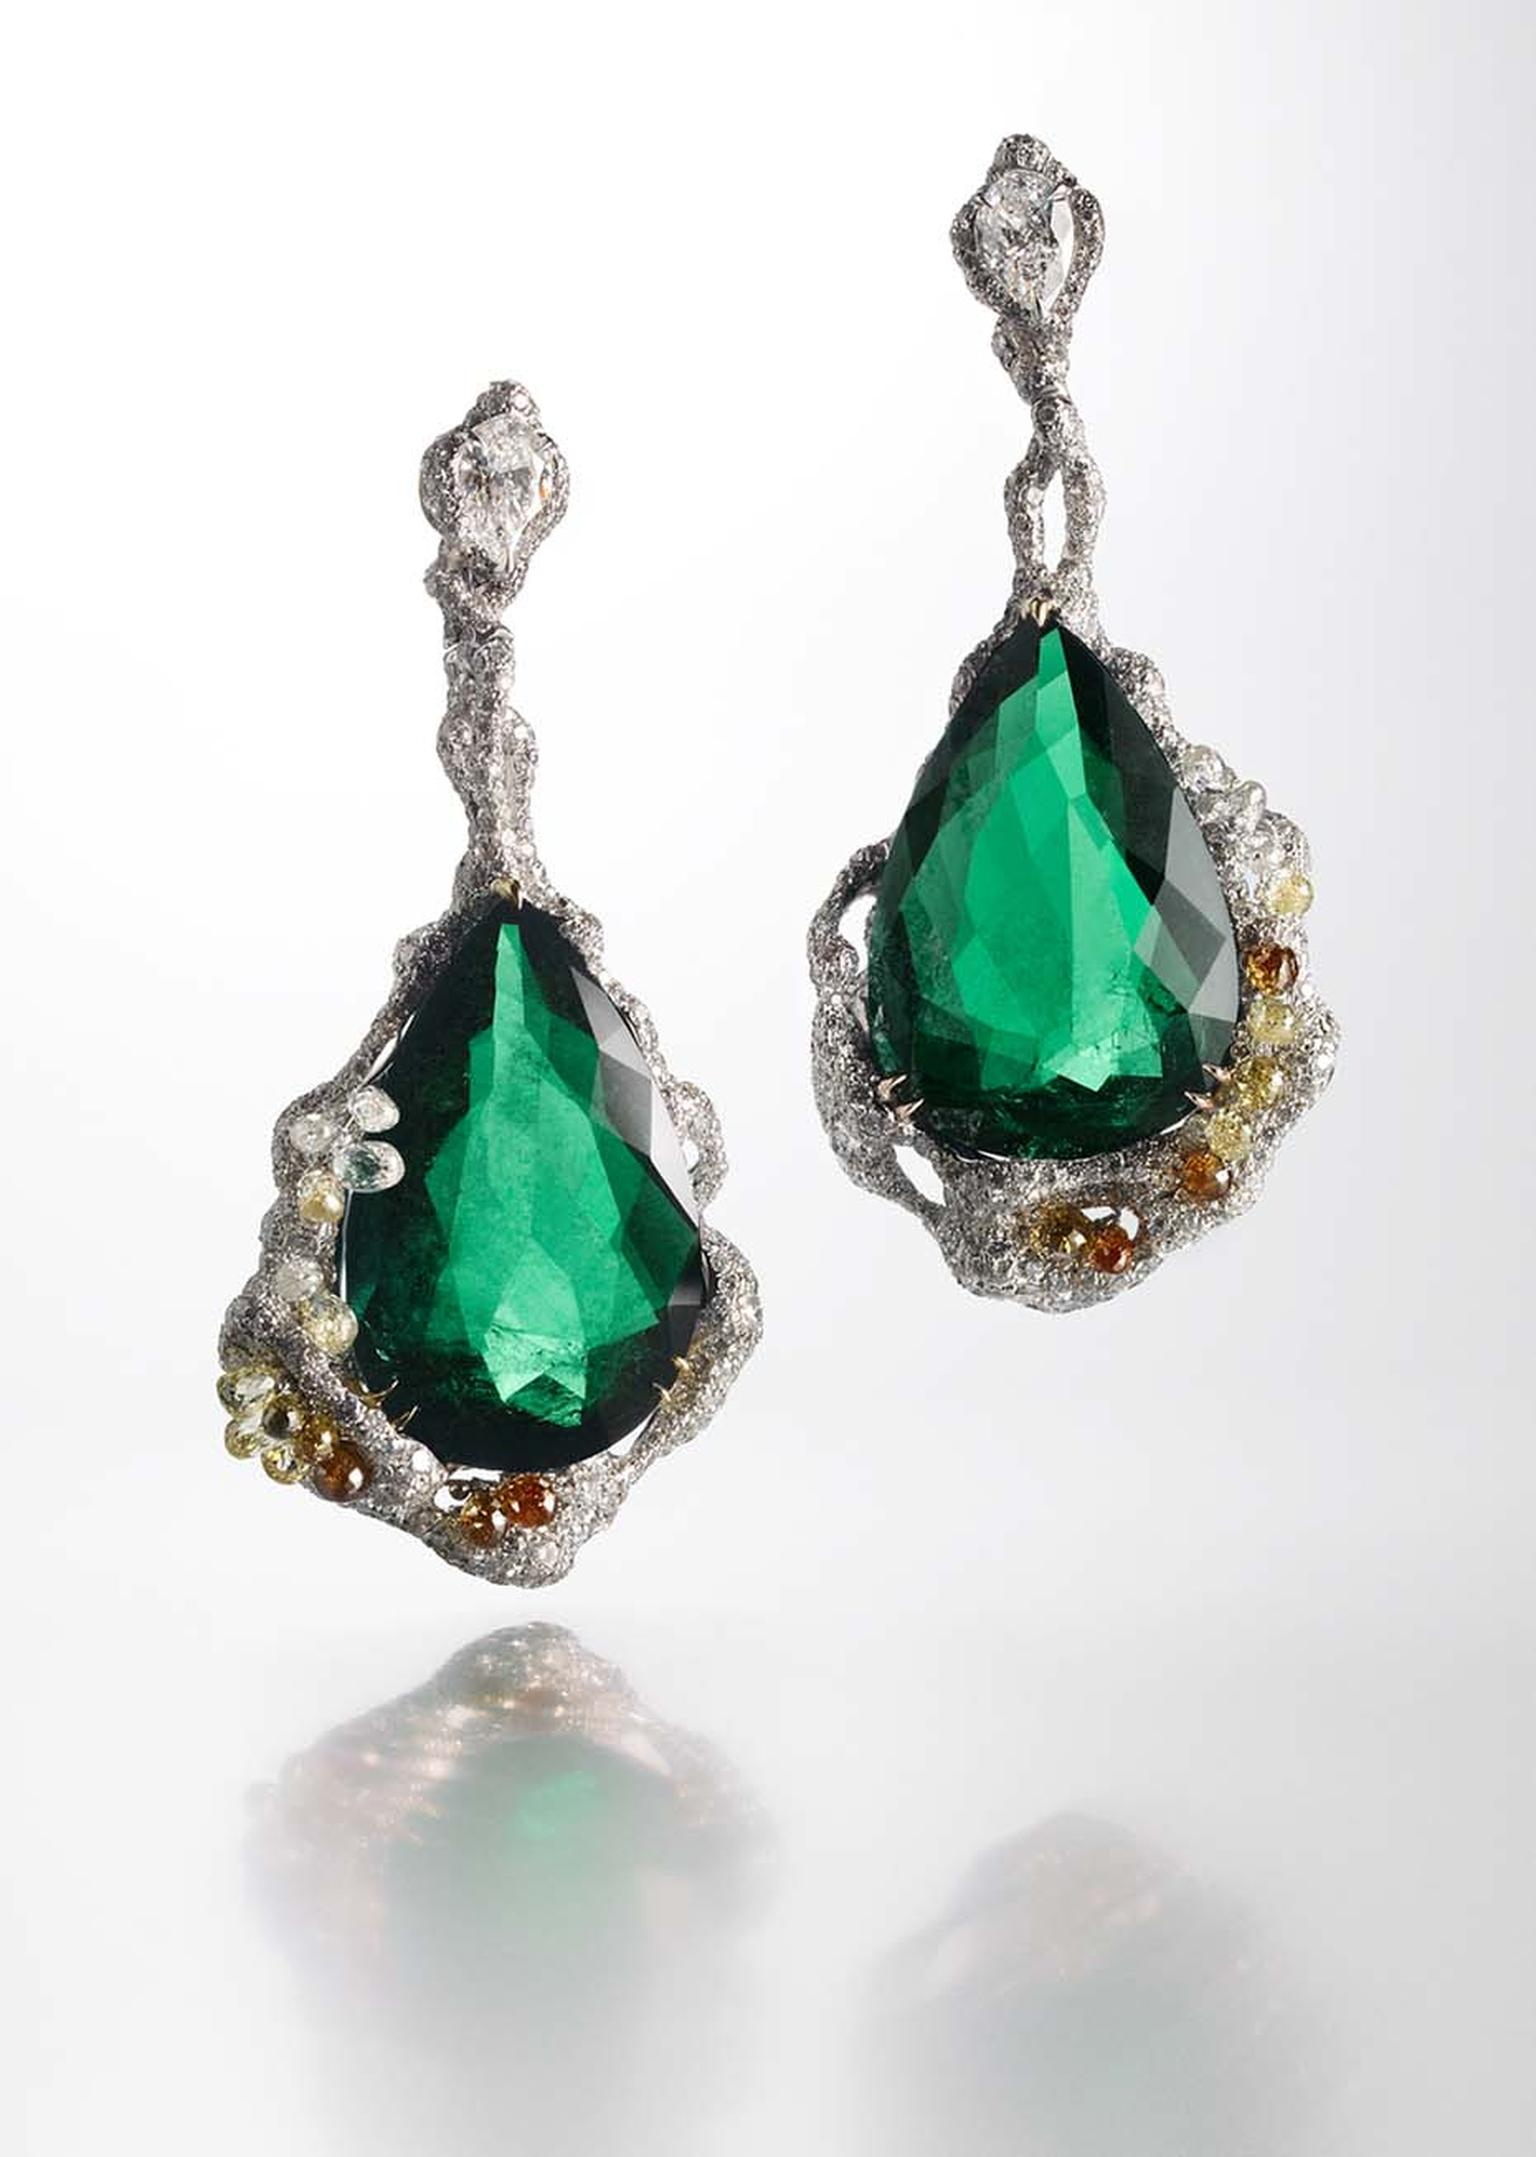 Cindy Chao Black Label Masterpiece emerald drop earrings.